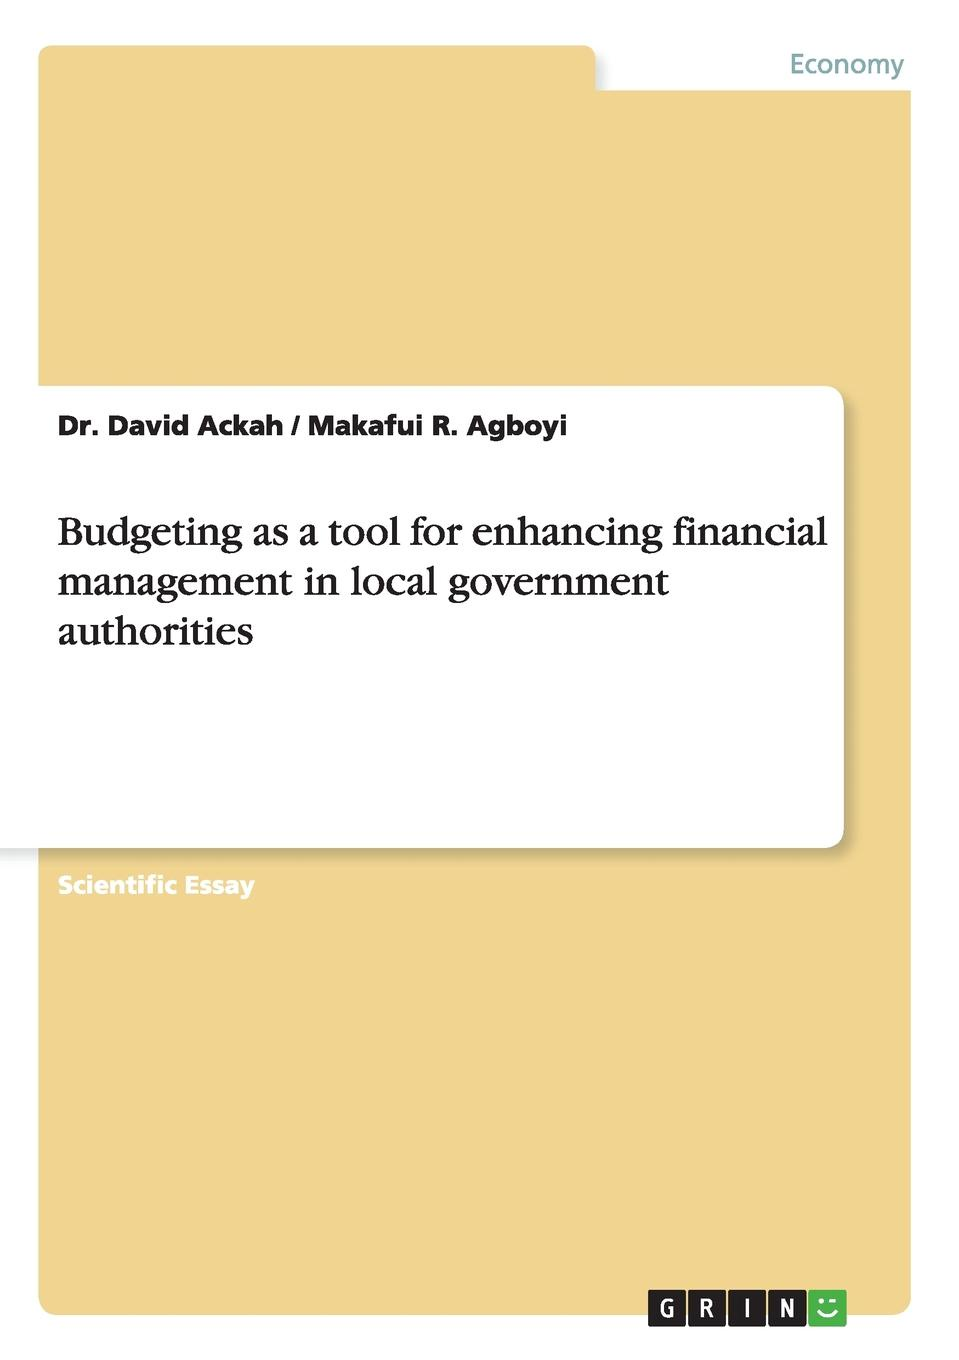 Dr. David Ackah, Makafui R. Agboyi Budgeting as a tool for enhancing financial management in local government authorities edward mcmillan j not for profit budgeting and financial management